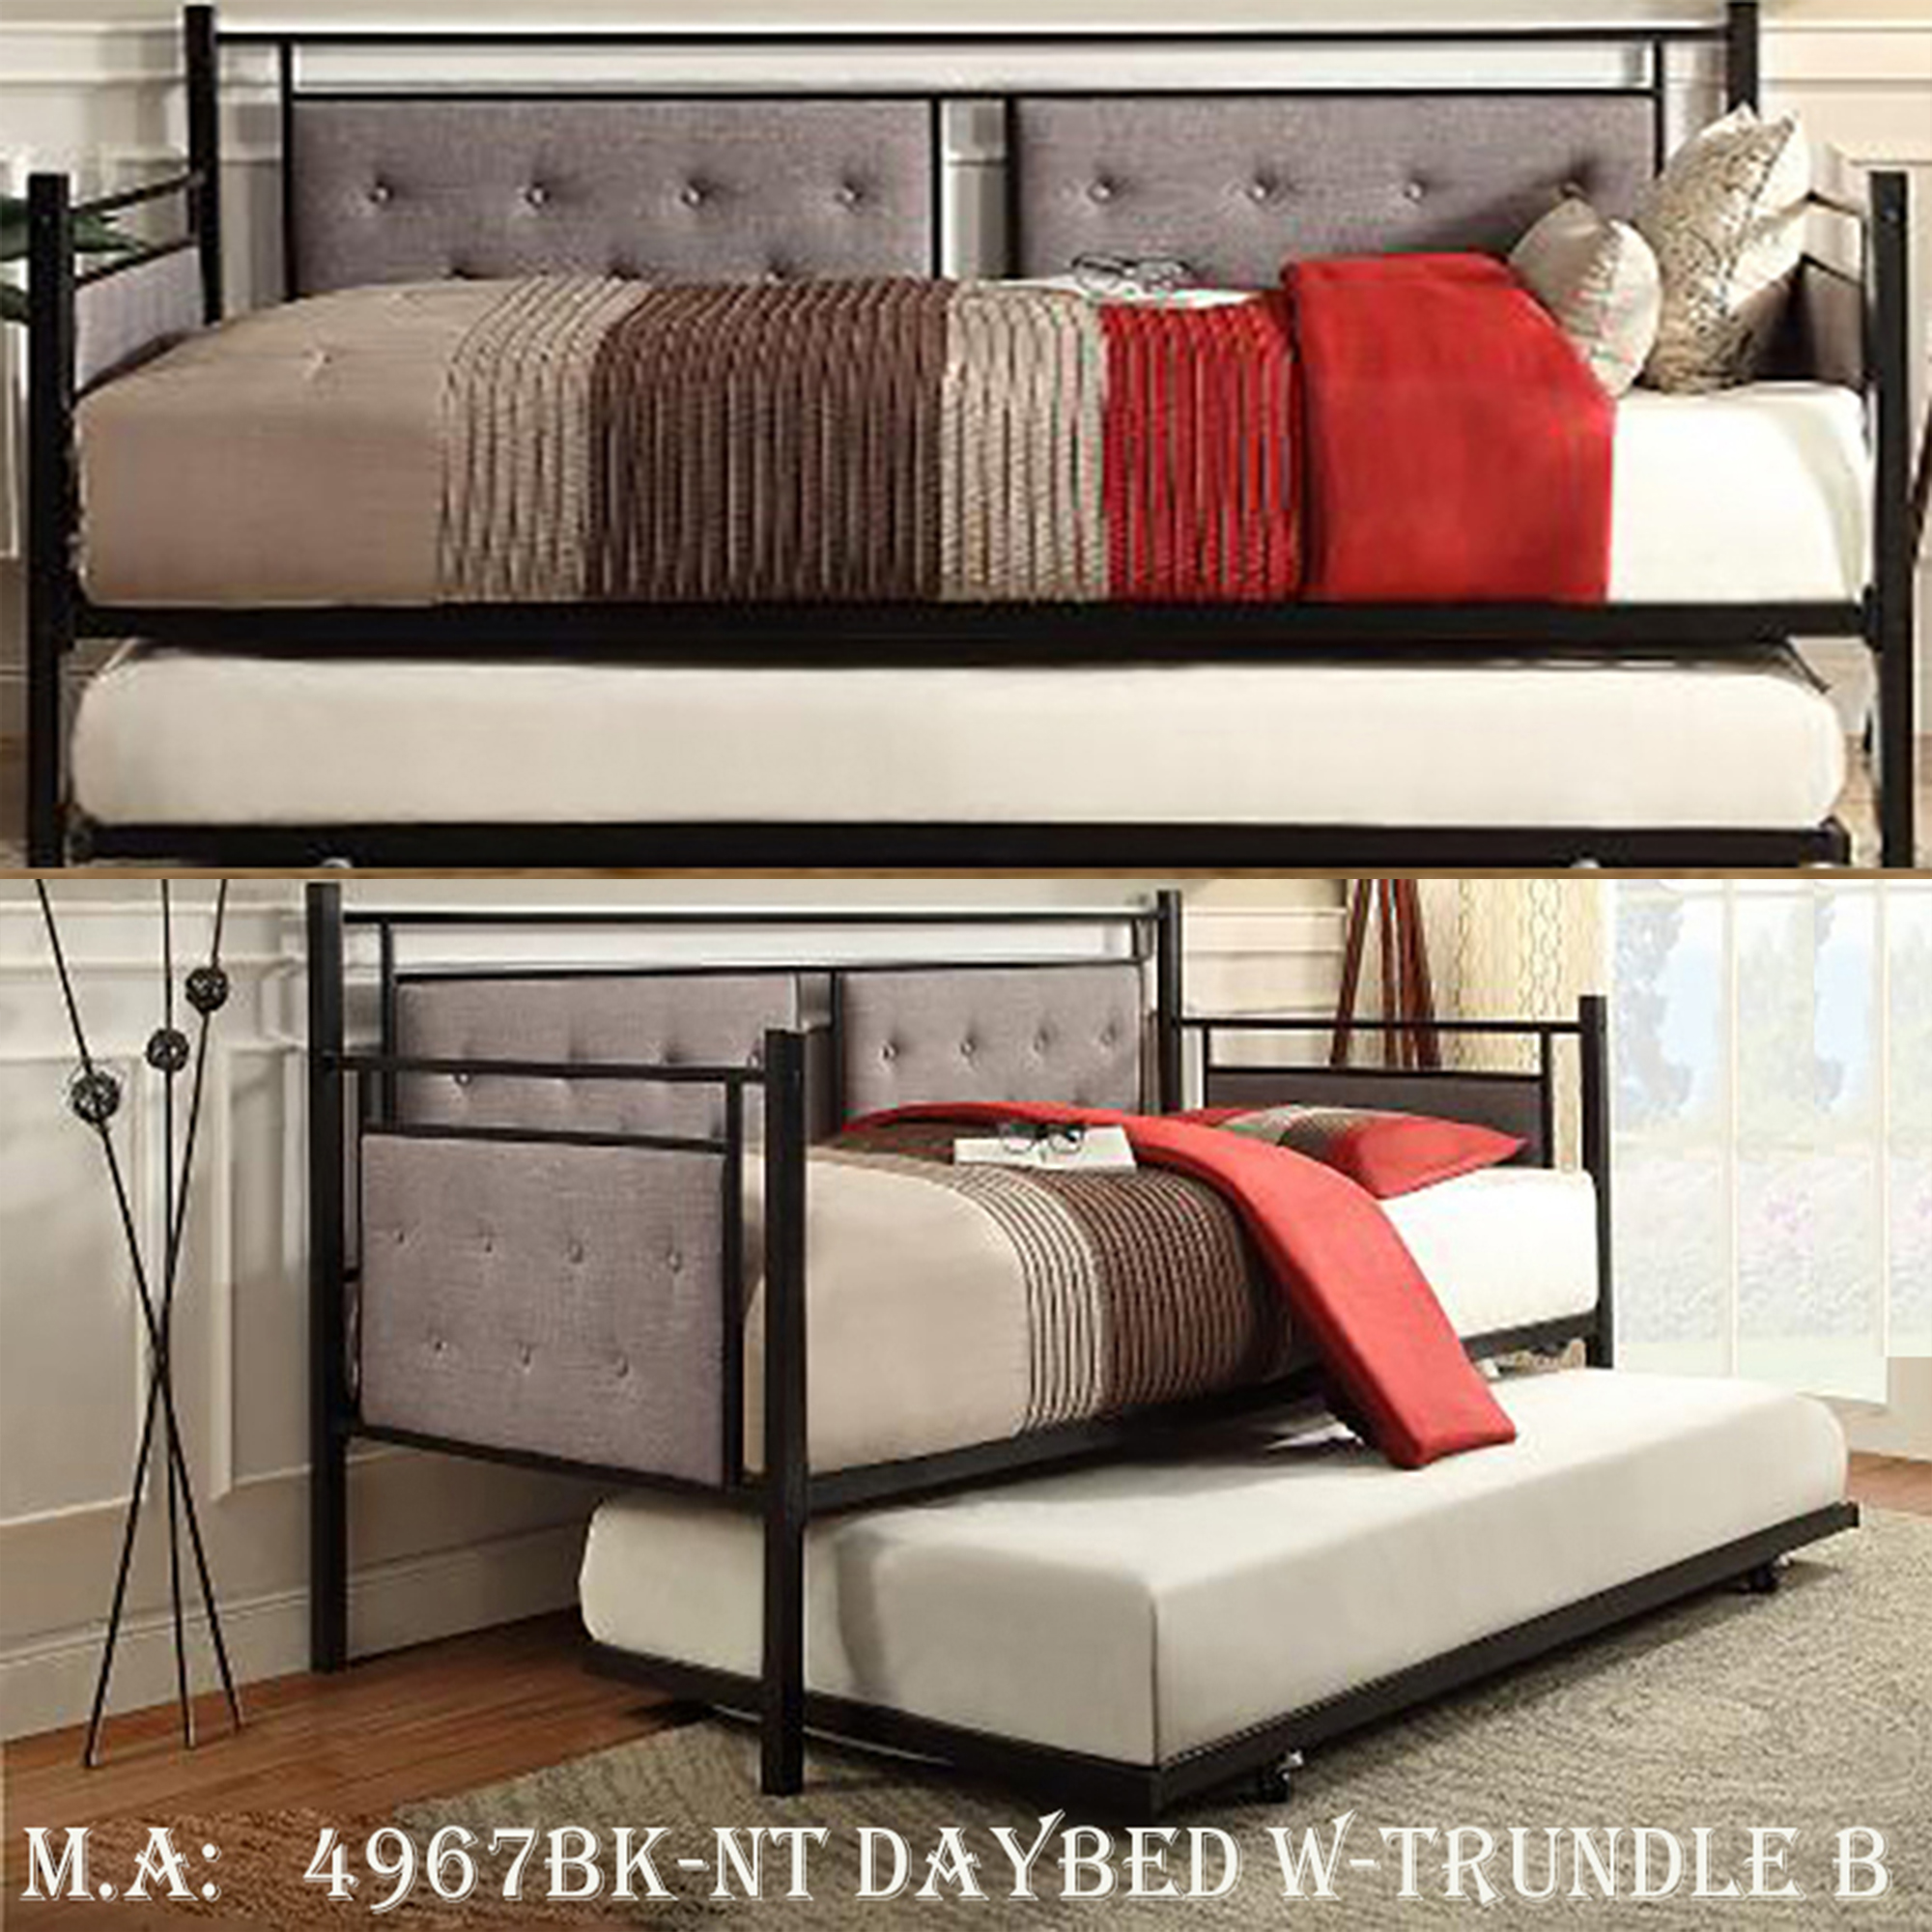 4967BK-NT daybed w-trundle b